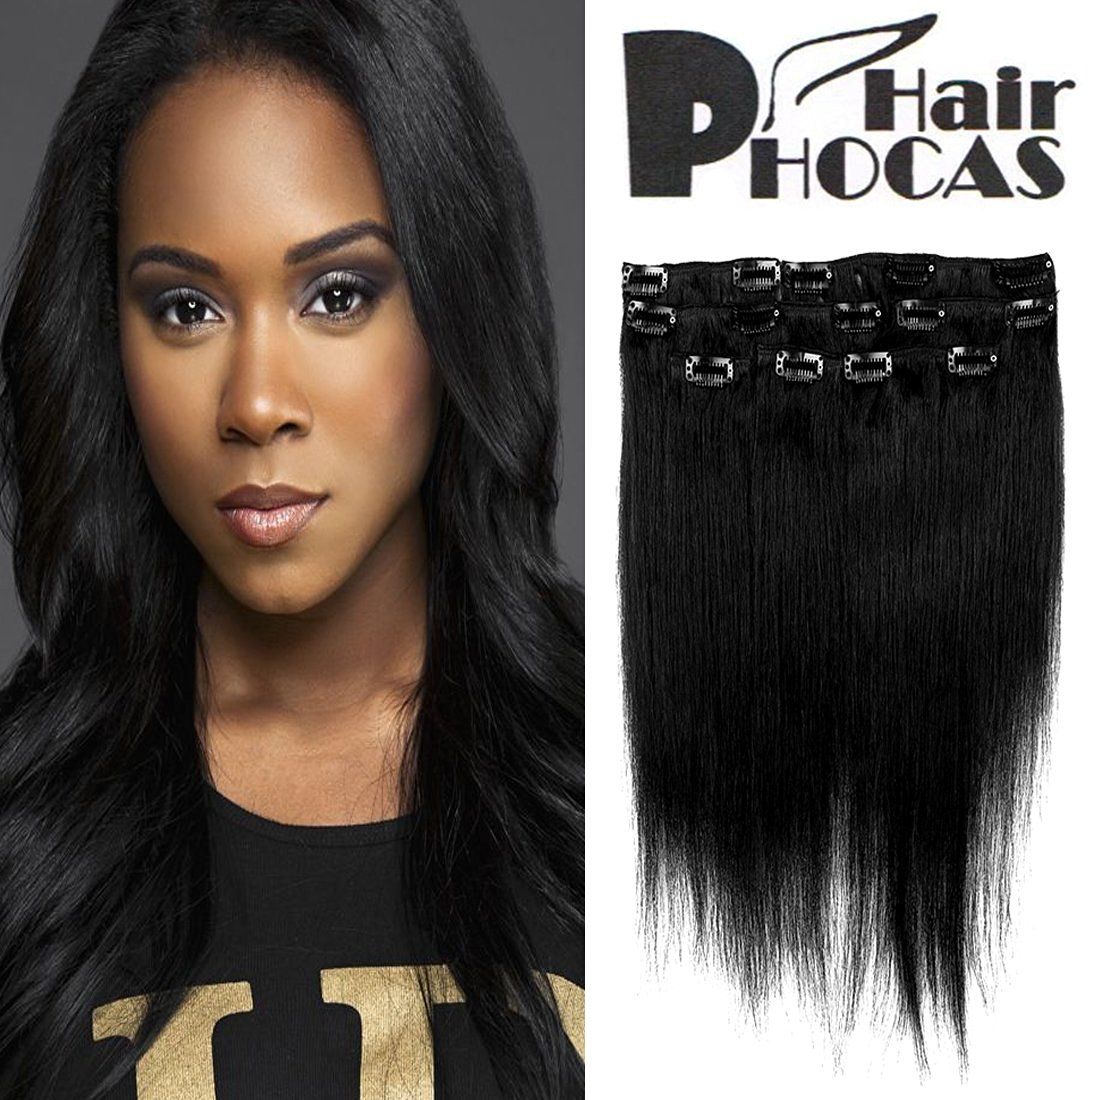 Buy Hairphocas 14 Inch 1 Clip In Remy Human Hair Extensions Jet